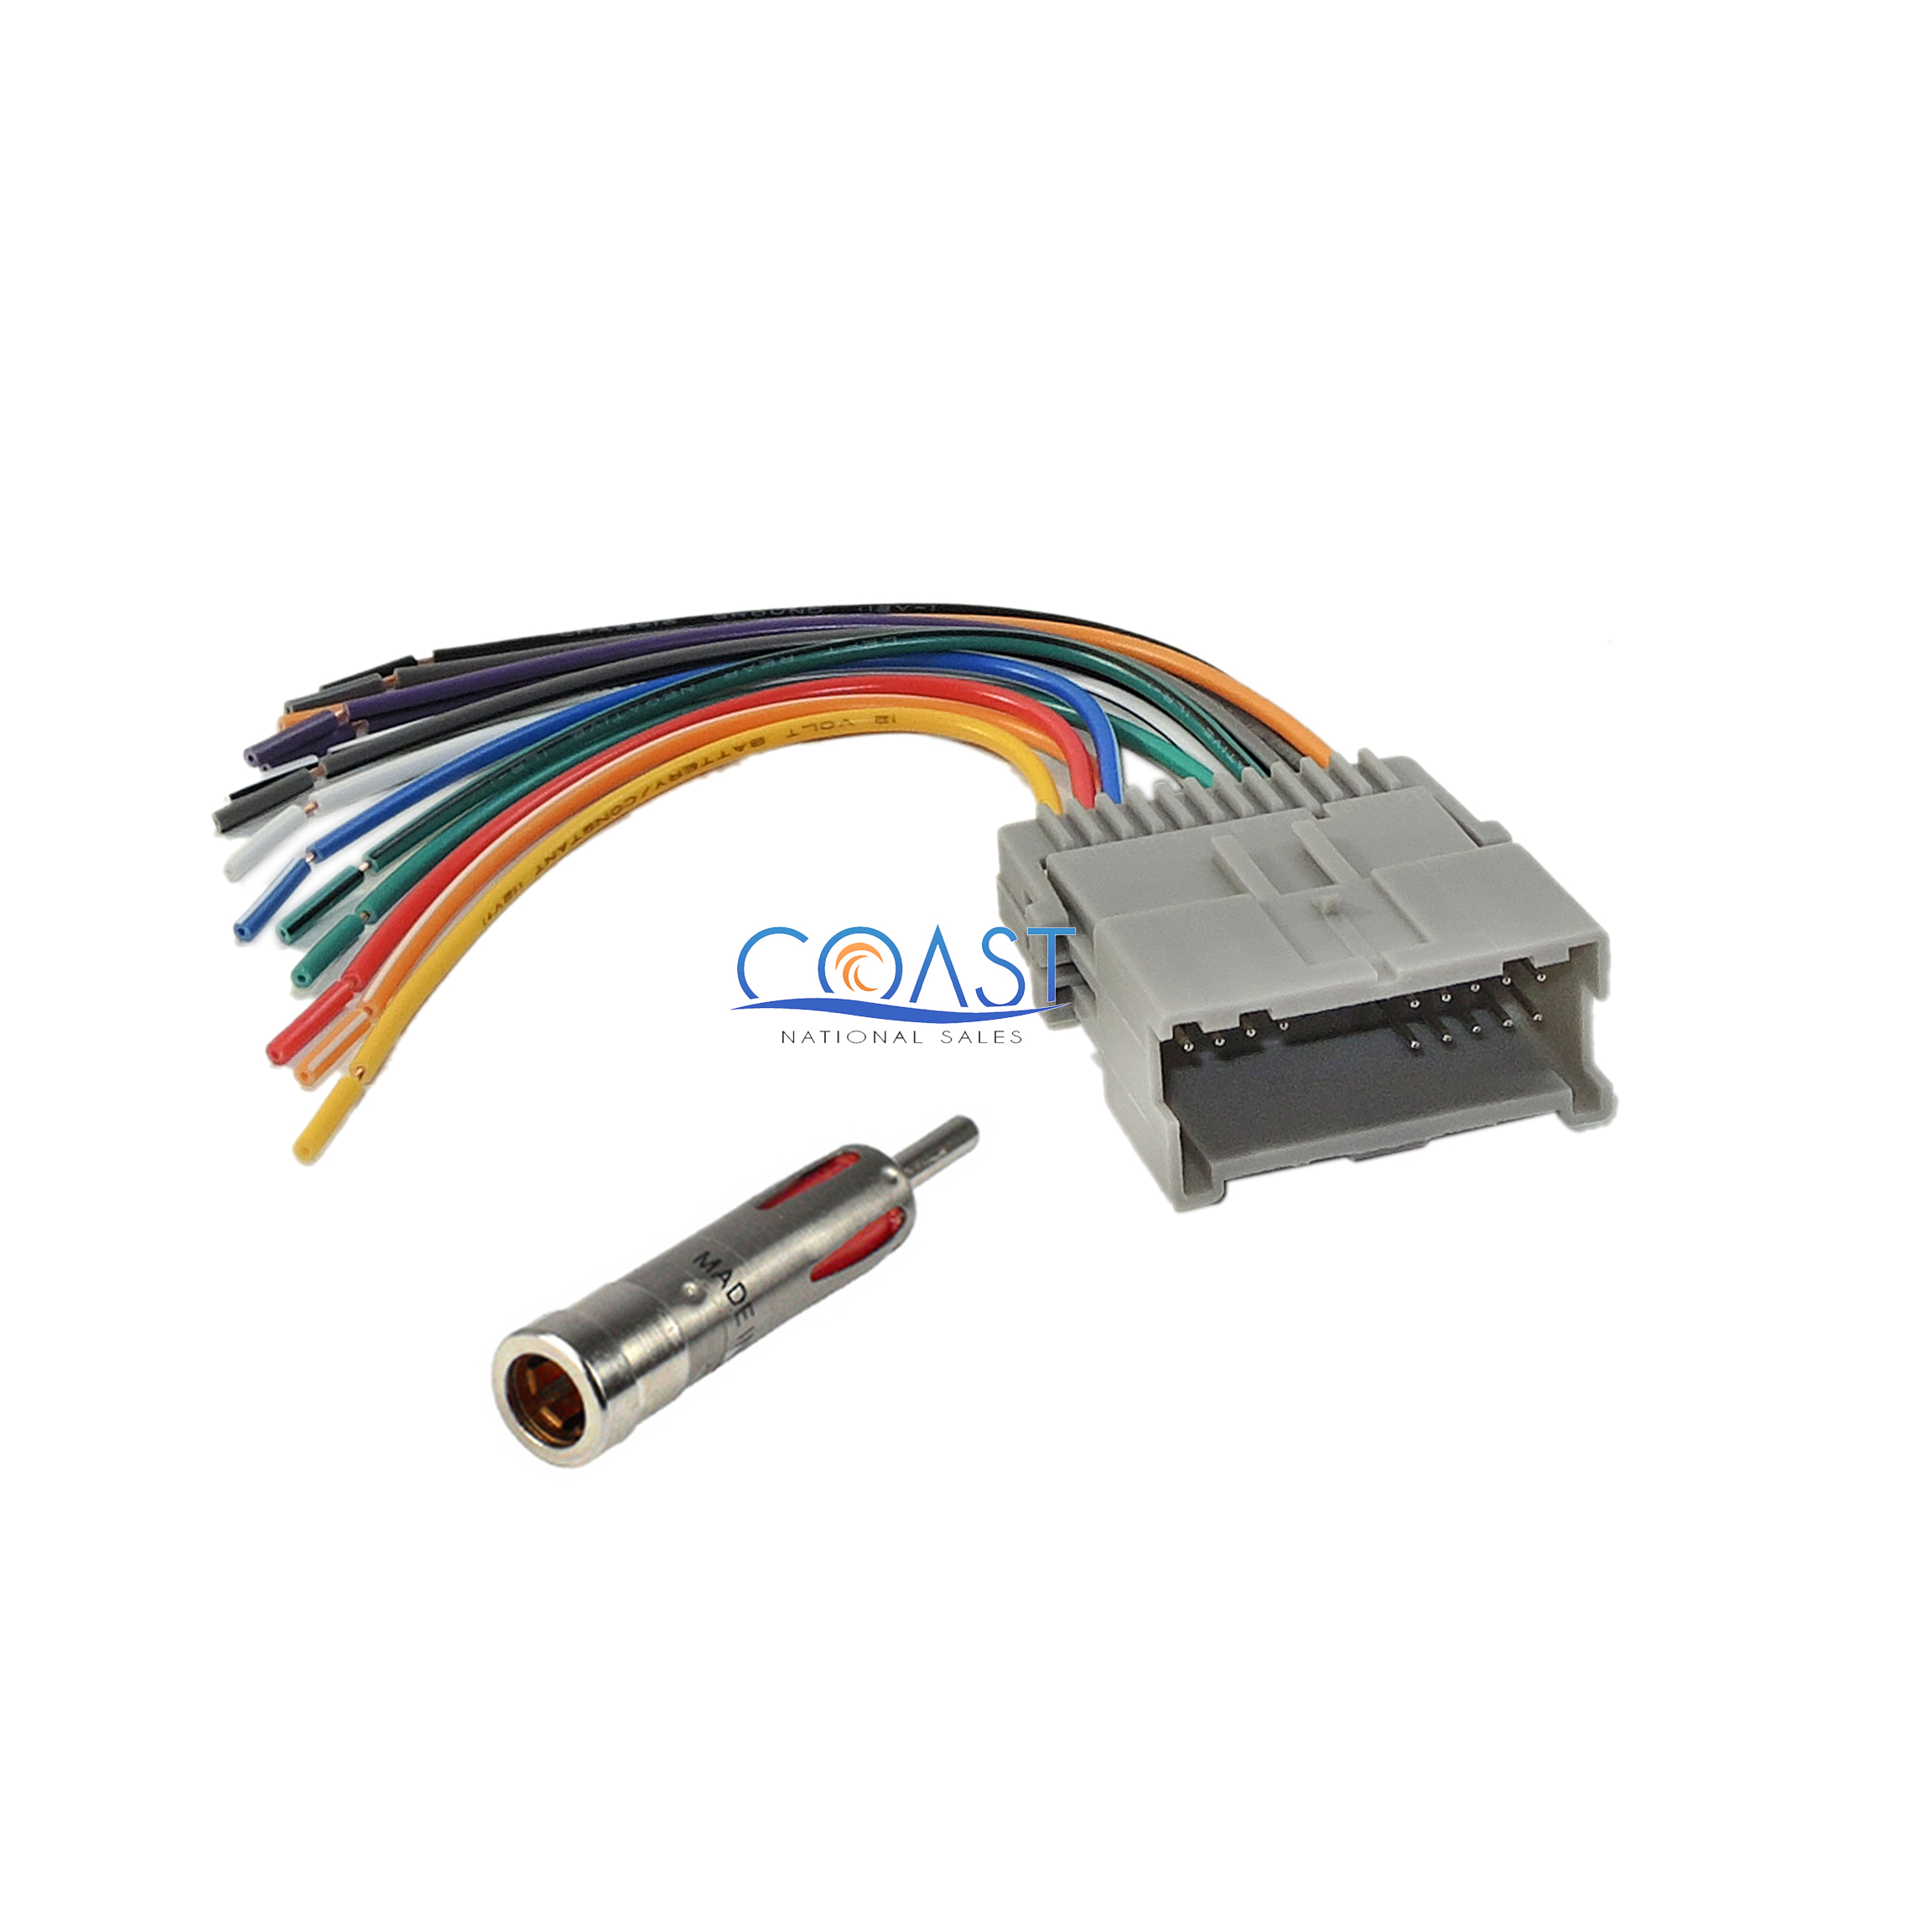 2000 chevy blazer stock radio wiring diagram bmw e30 s10 adapter autos post